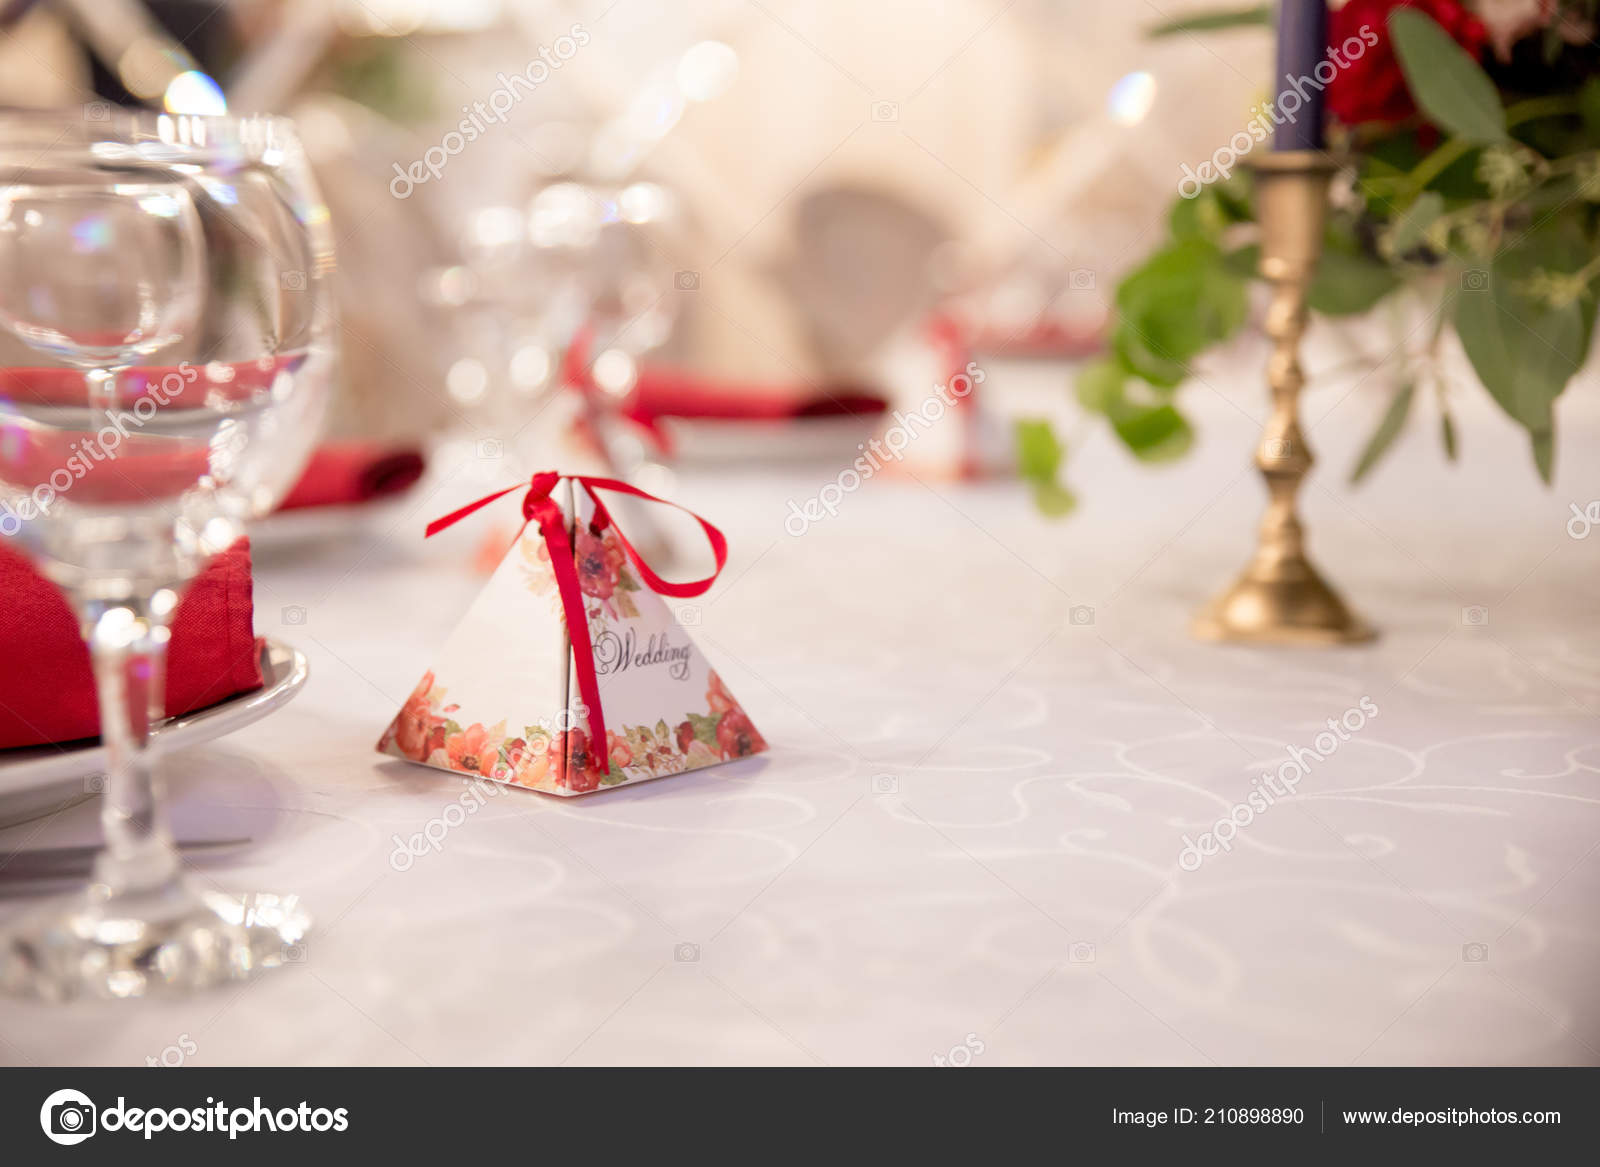 Table Decor Wedding Ceremony Table Setting Flowers Red White Decor